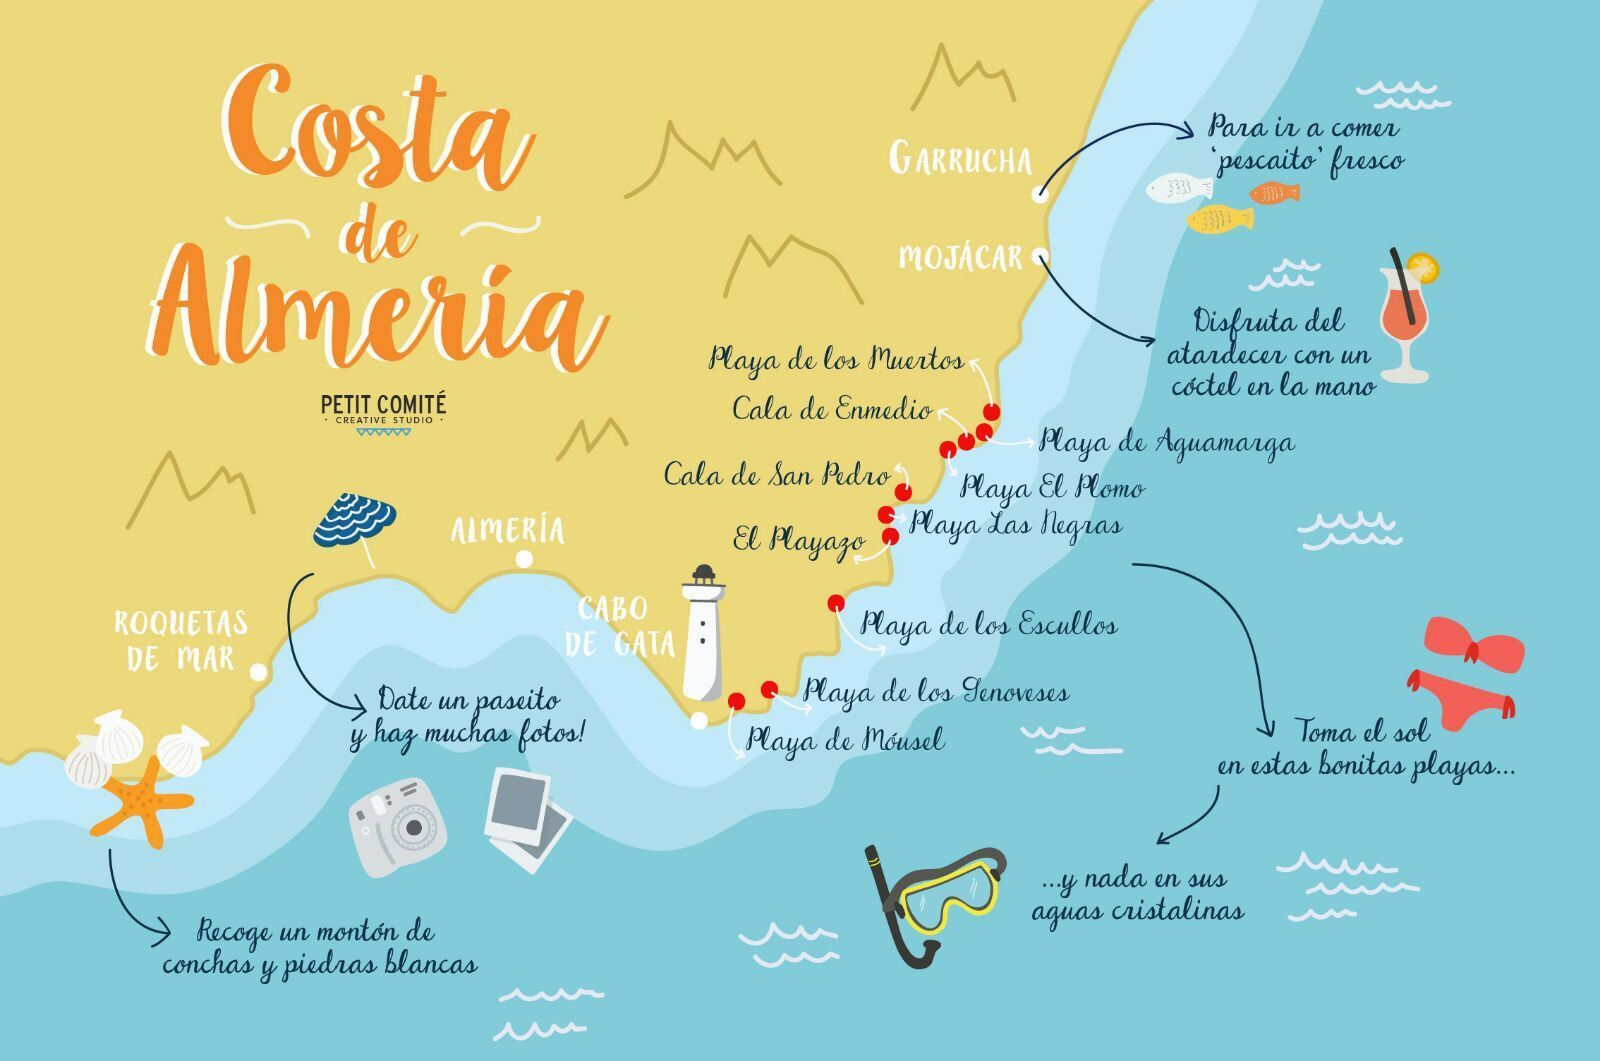 Costa Almeria Map costa almeria map | Spain Savvy